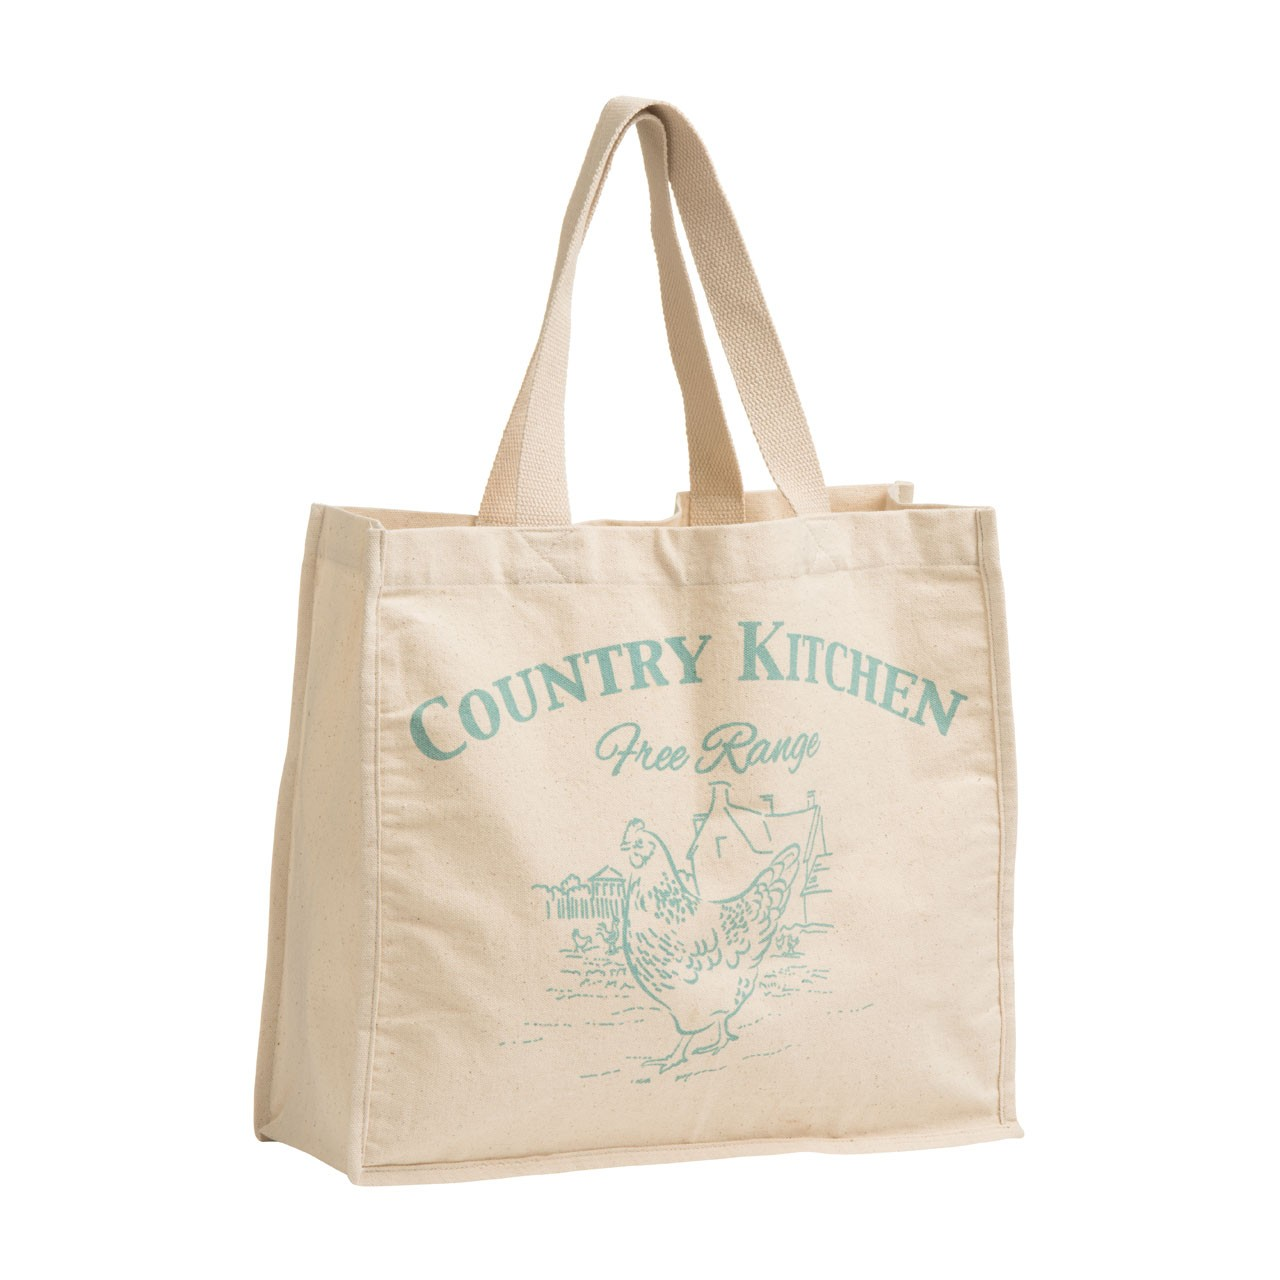 Country Kitchen Shopping Bag Cotton Canvas